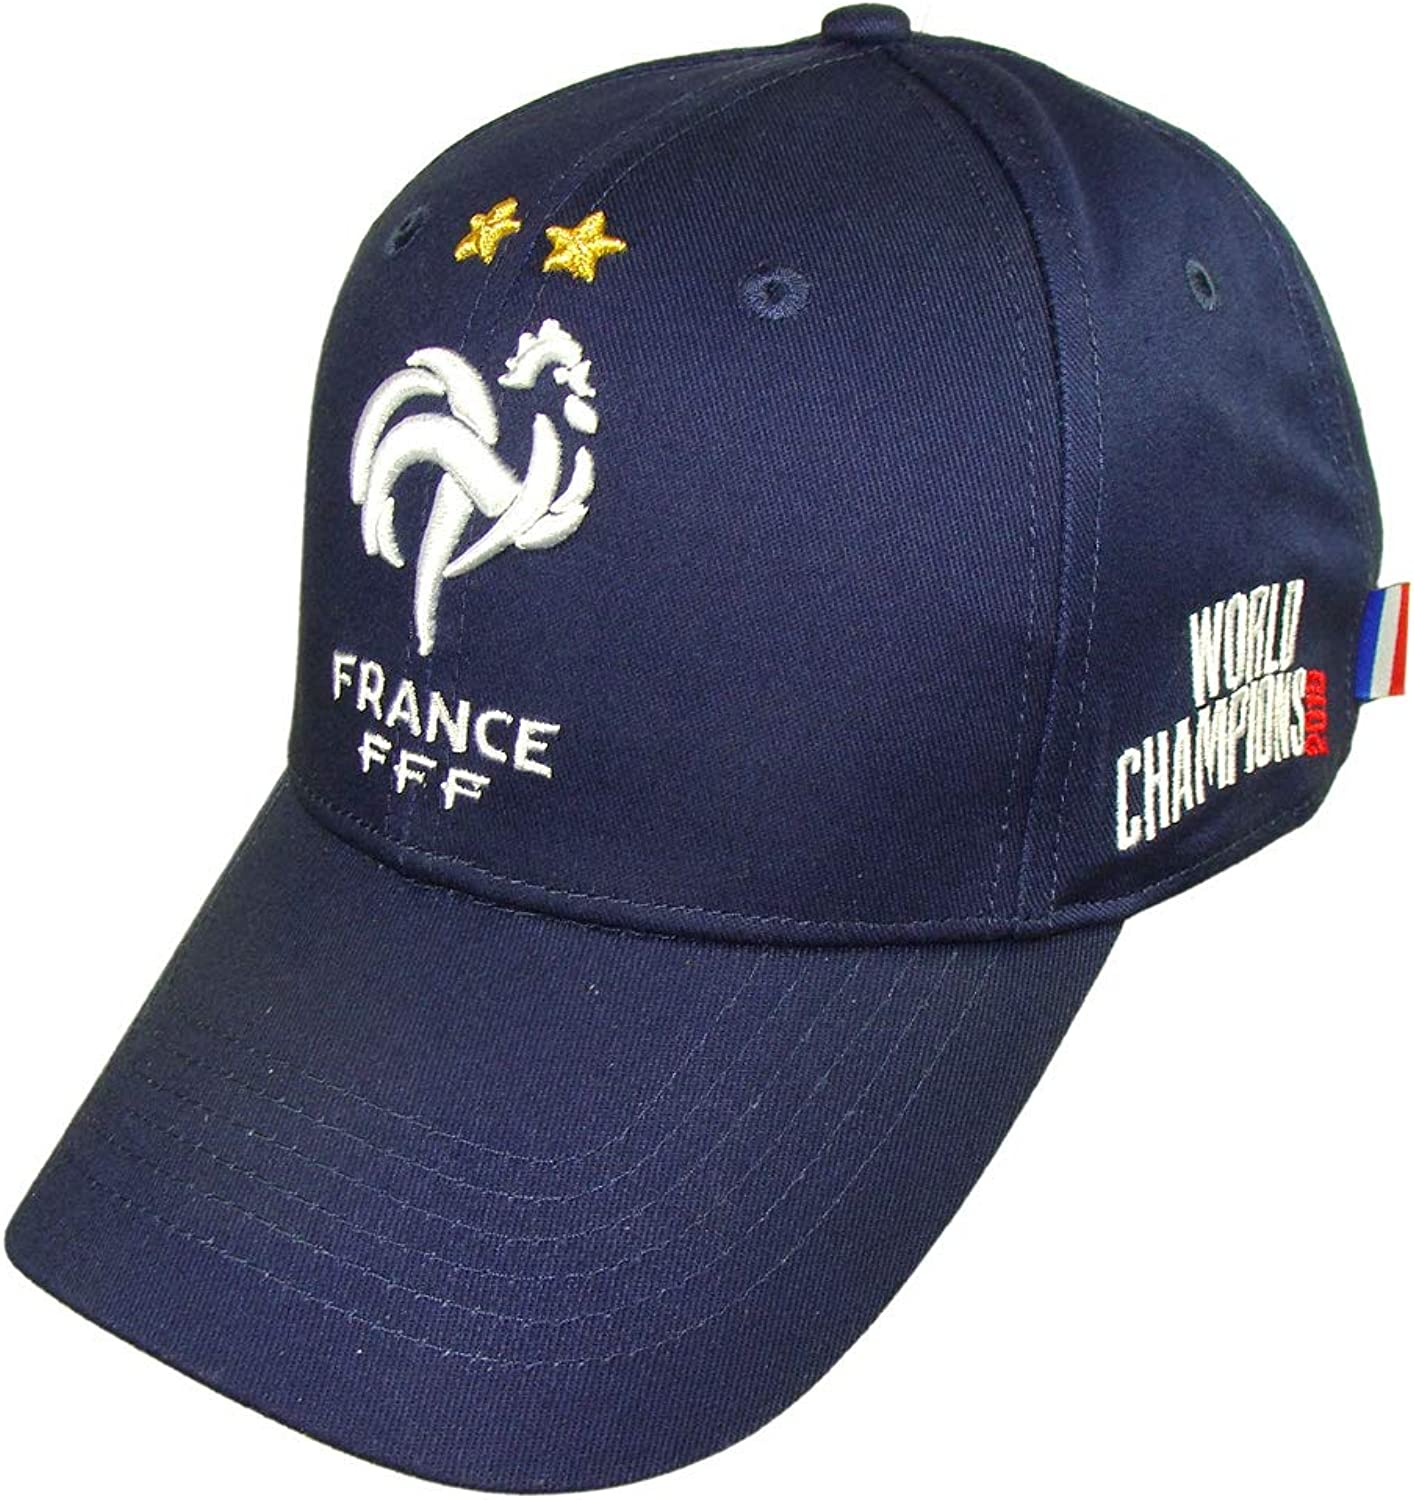 French Soccer Team 'World Champions 2018' Official Cap  blueee